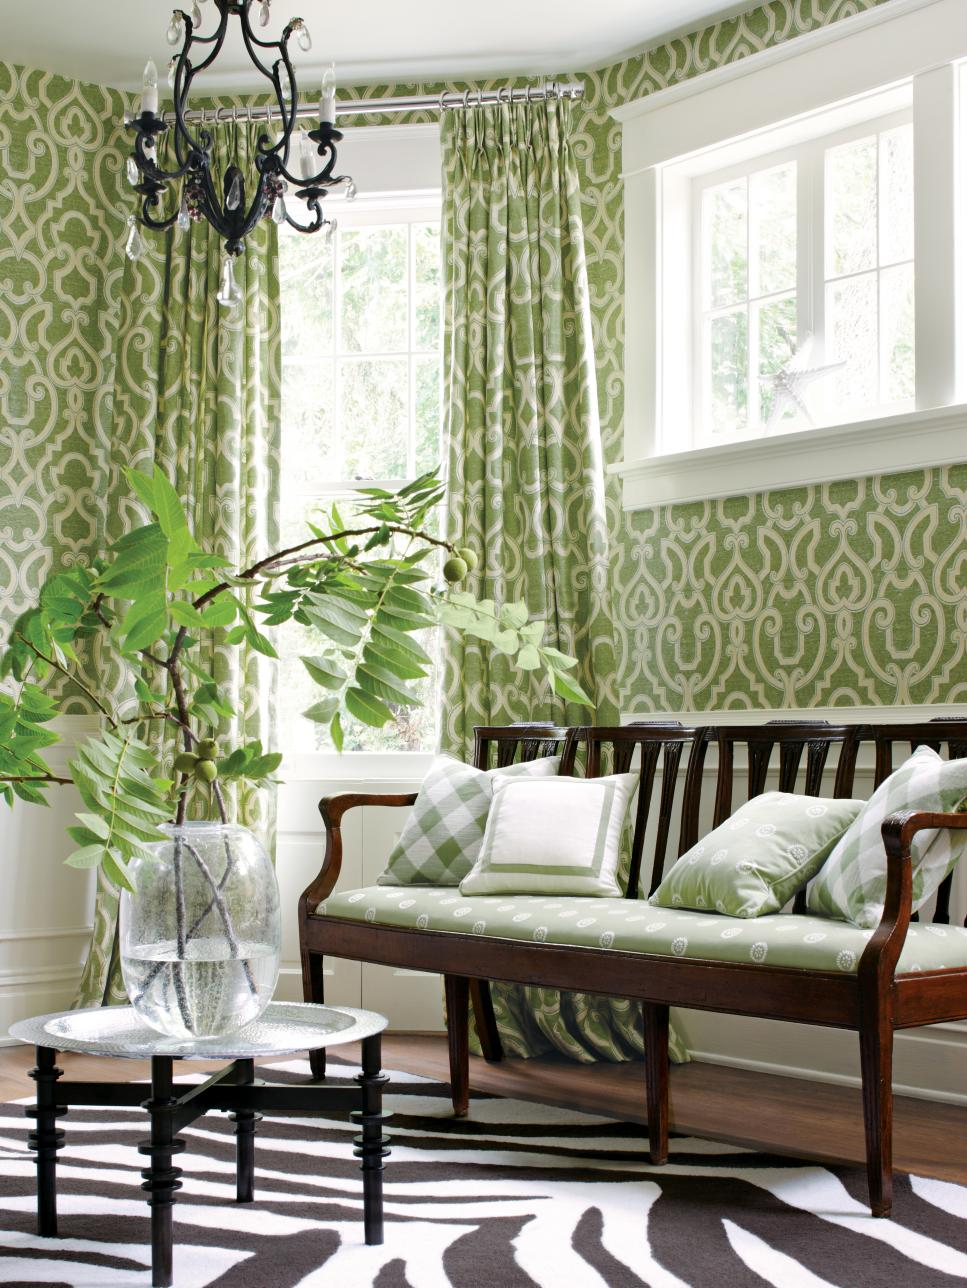 10 Ways To Decorate With Green Moss